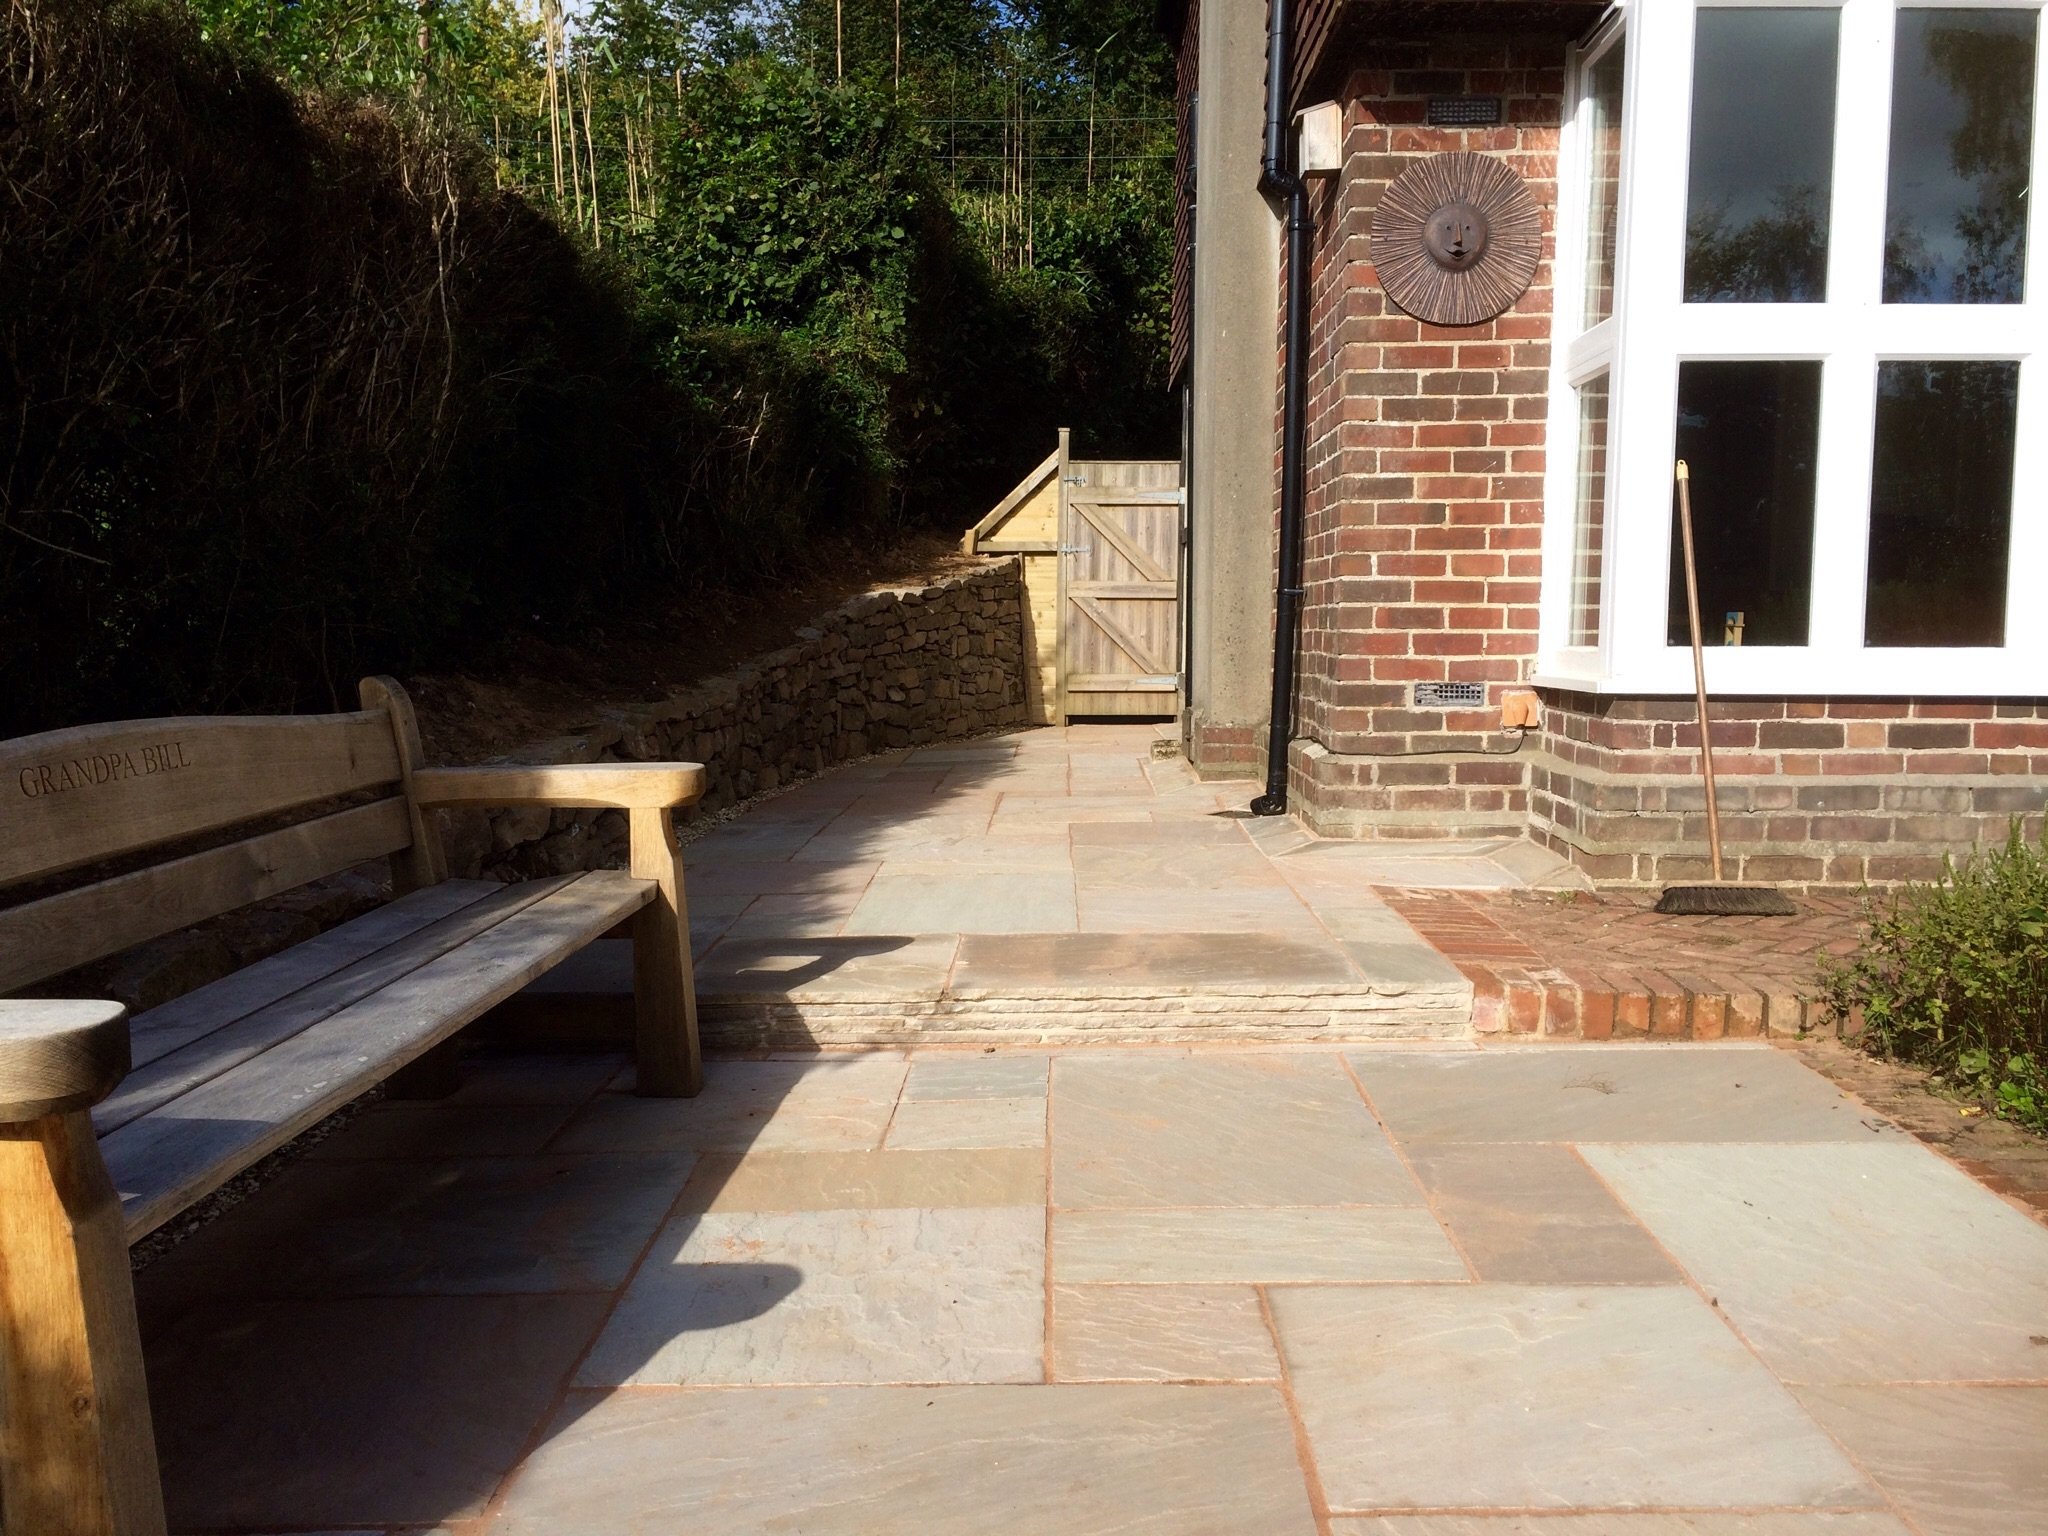 Sandstone paving and drystone wall completed with gate.